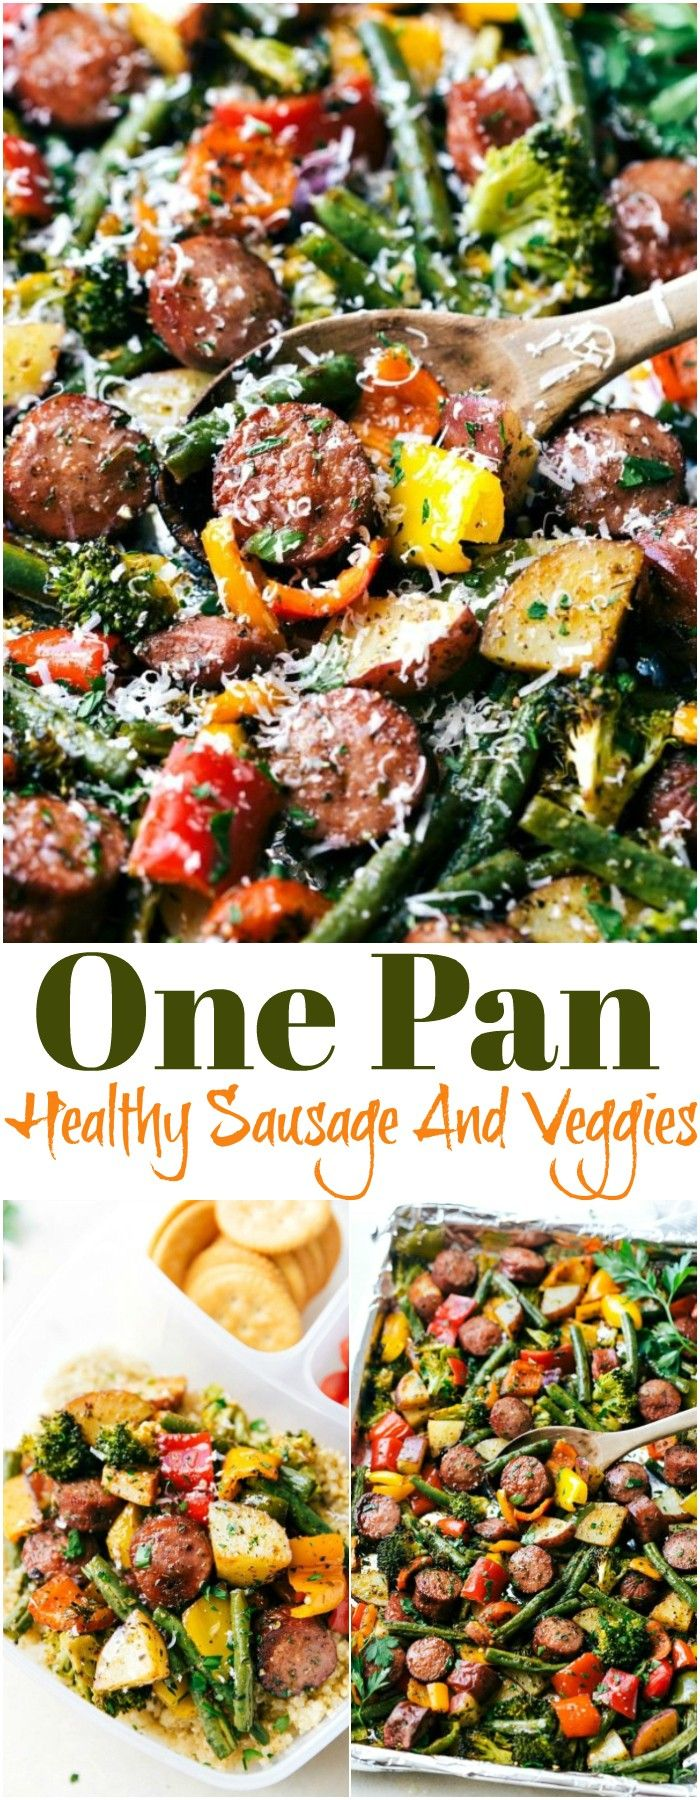 Sheet Pan Meals - Healthy And Delicious Recipes #dinnerrecipesforfamilymaindishes